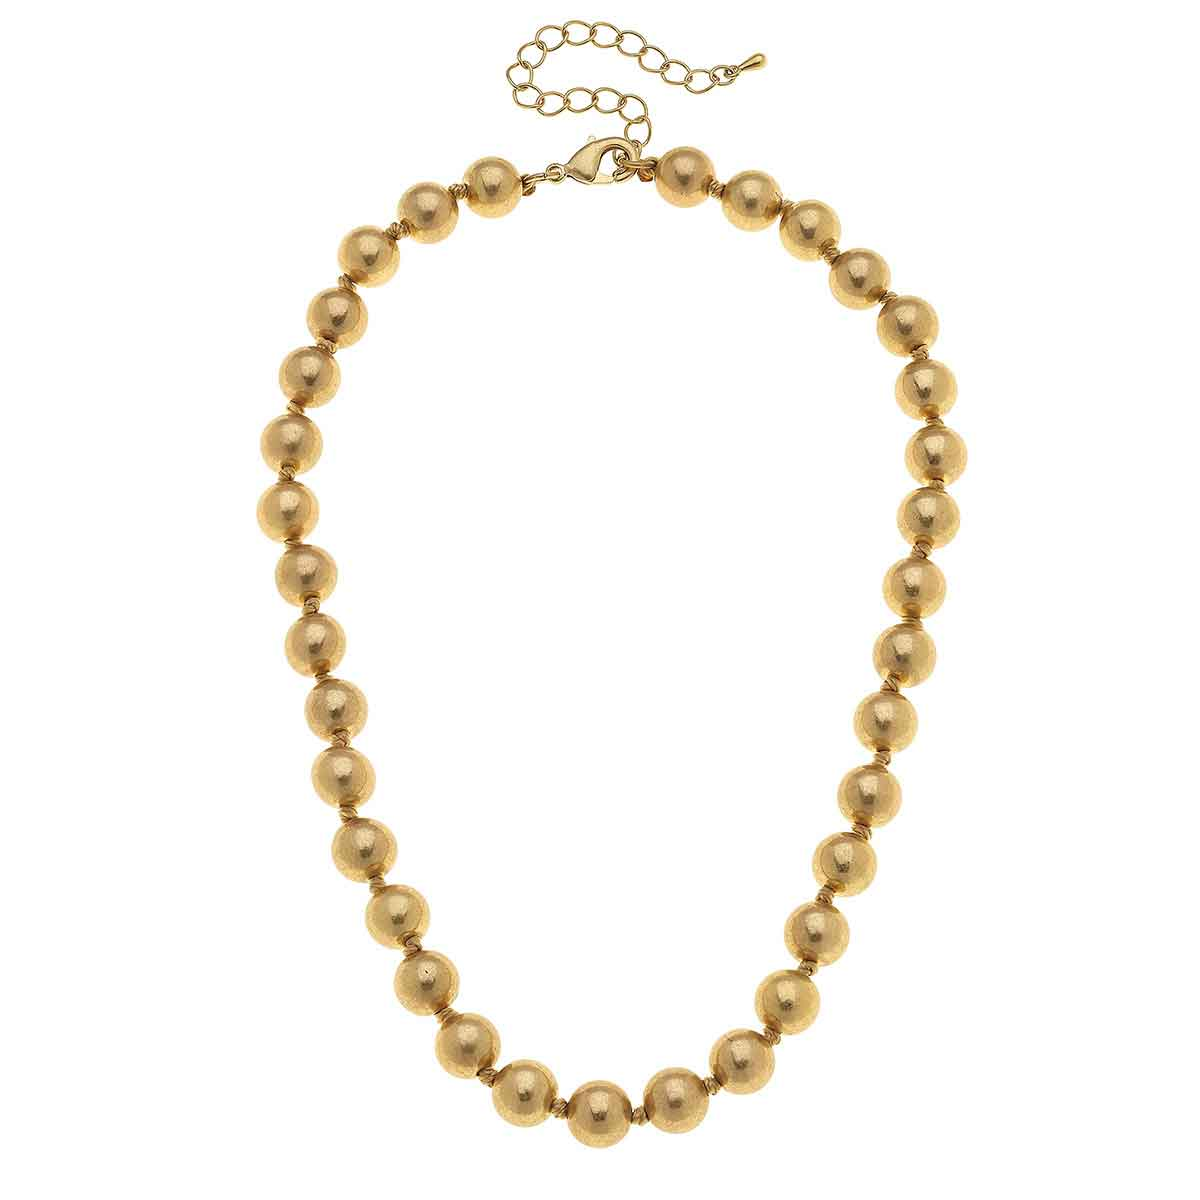 Chloe Beaded Necklace in Worn Gold